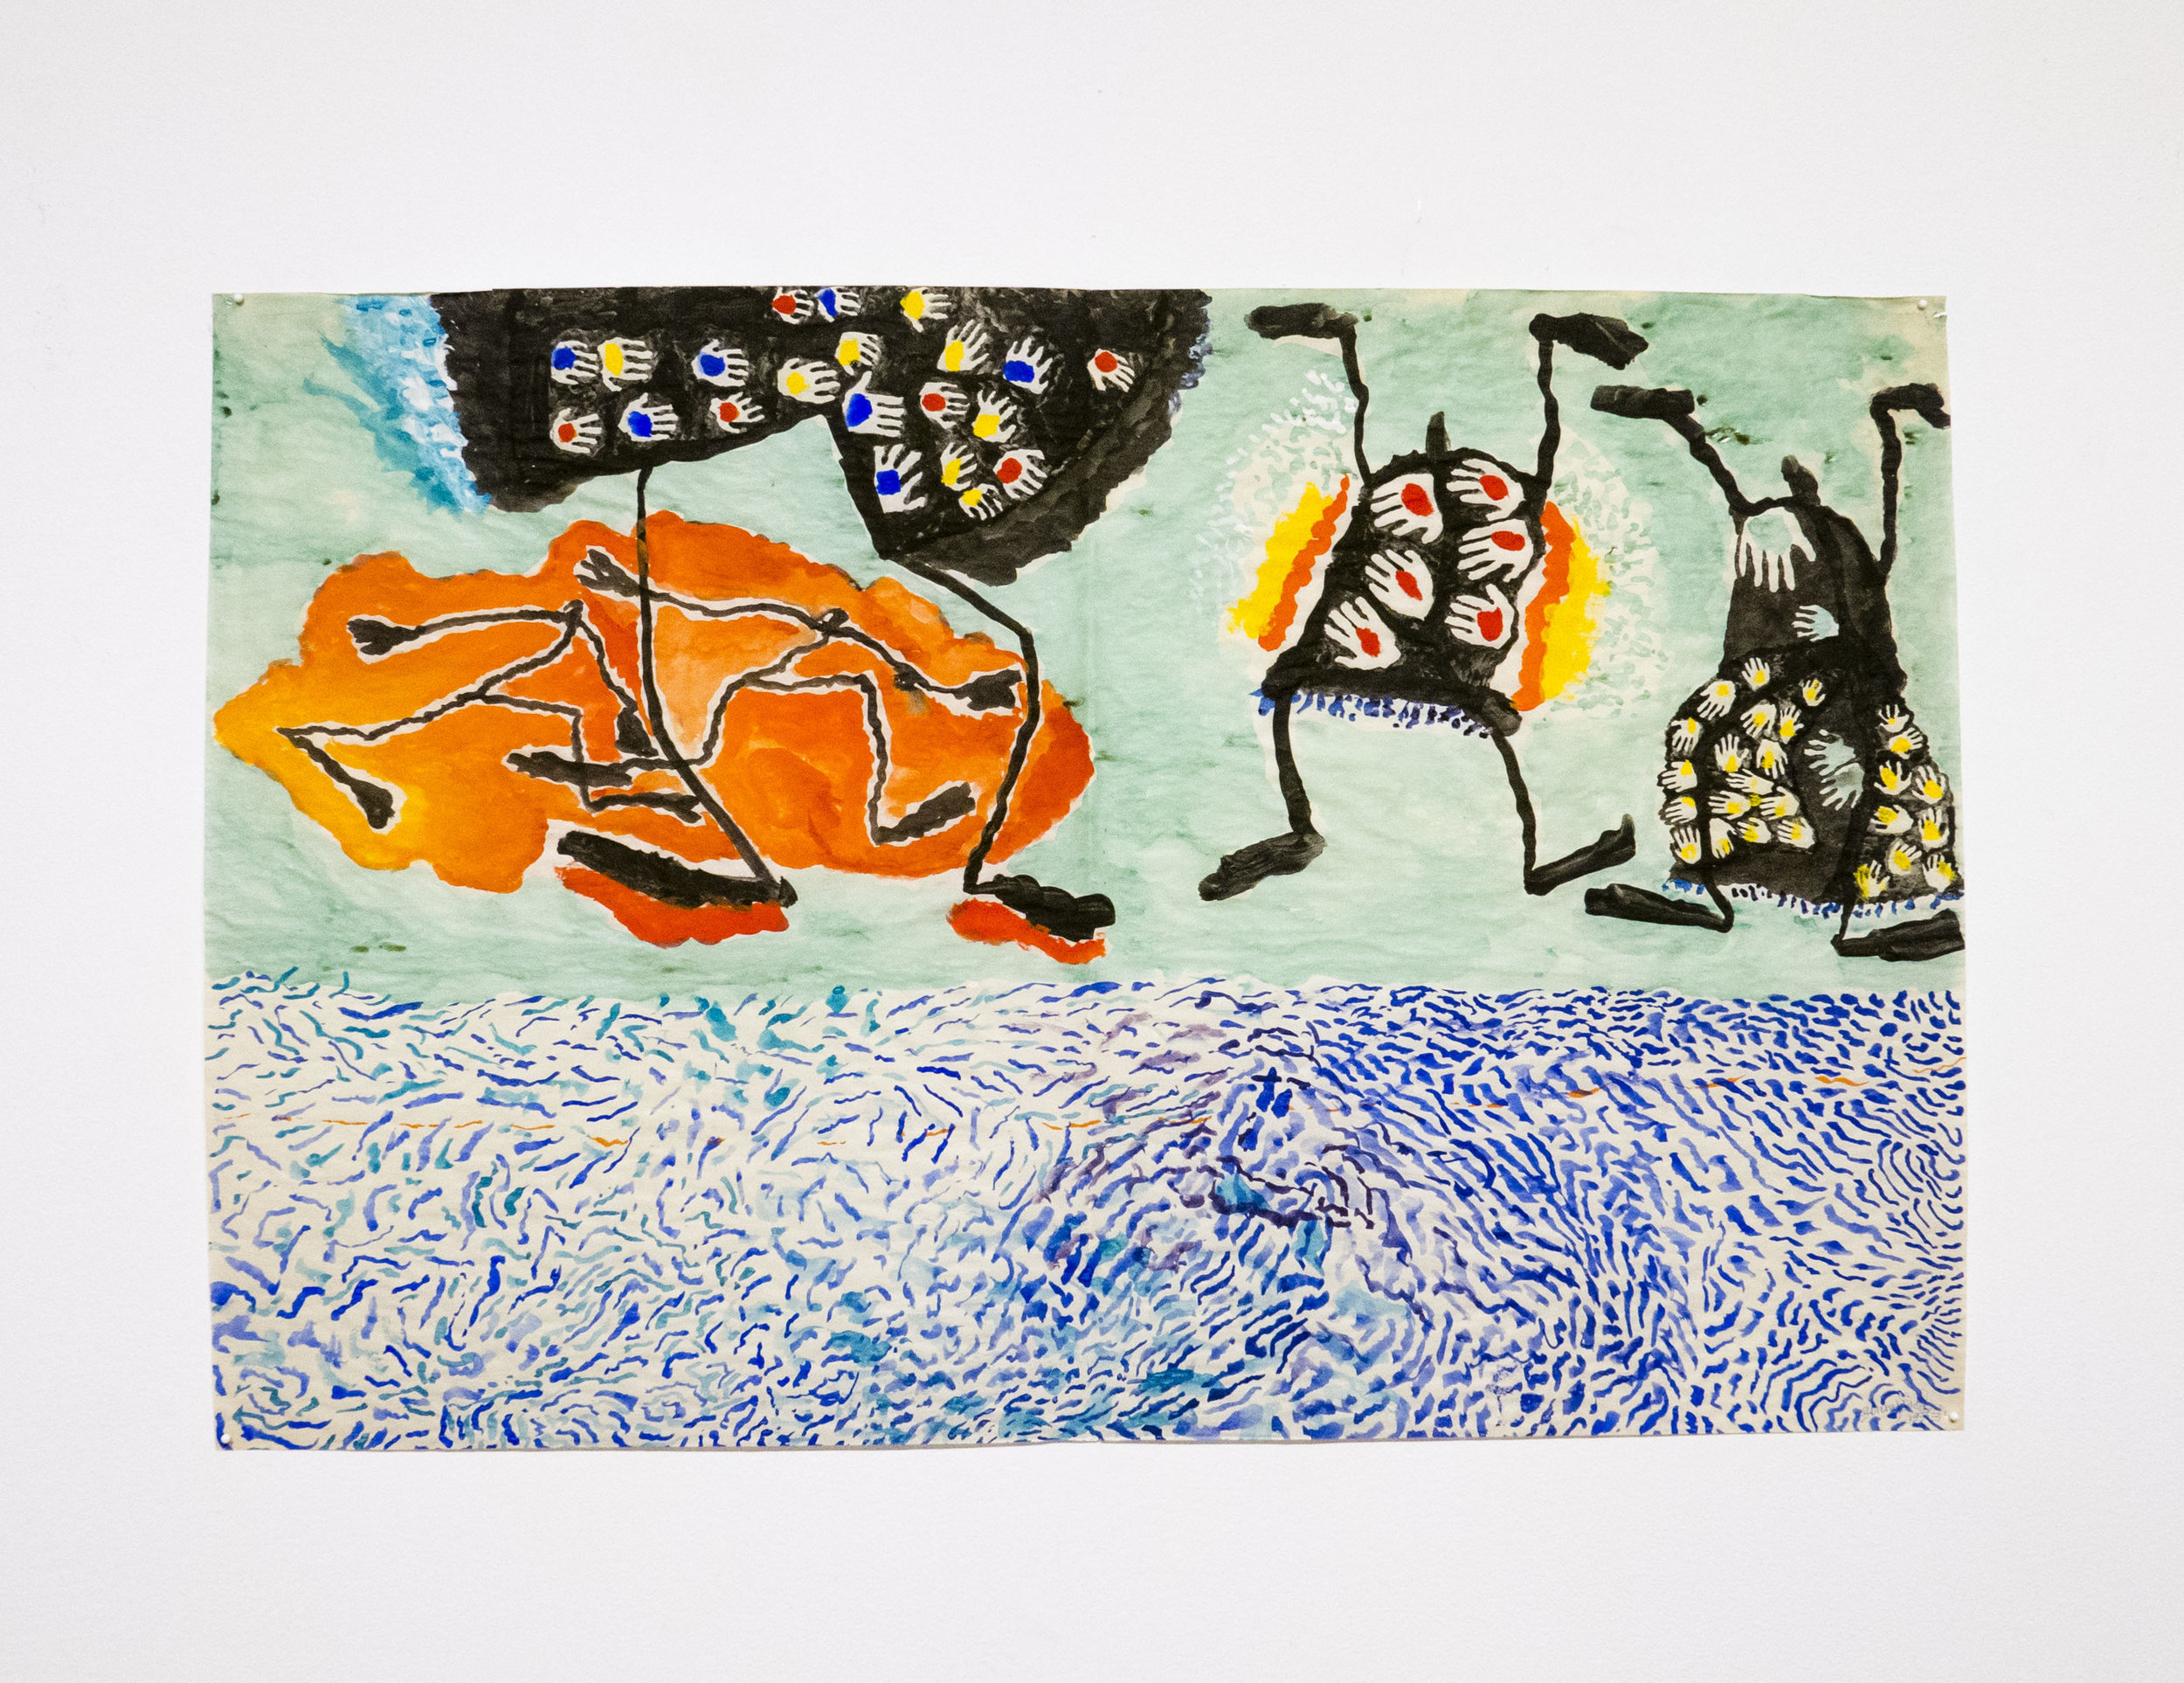 Jenny Snider,  Costumed Dancers (Seaside),  1973, gouache, watercolor, and ink on paper, 24h x 36w in.